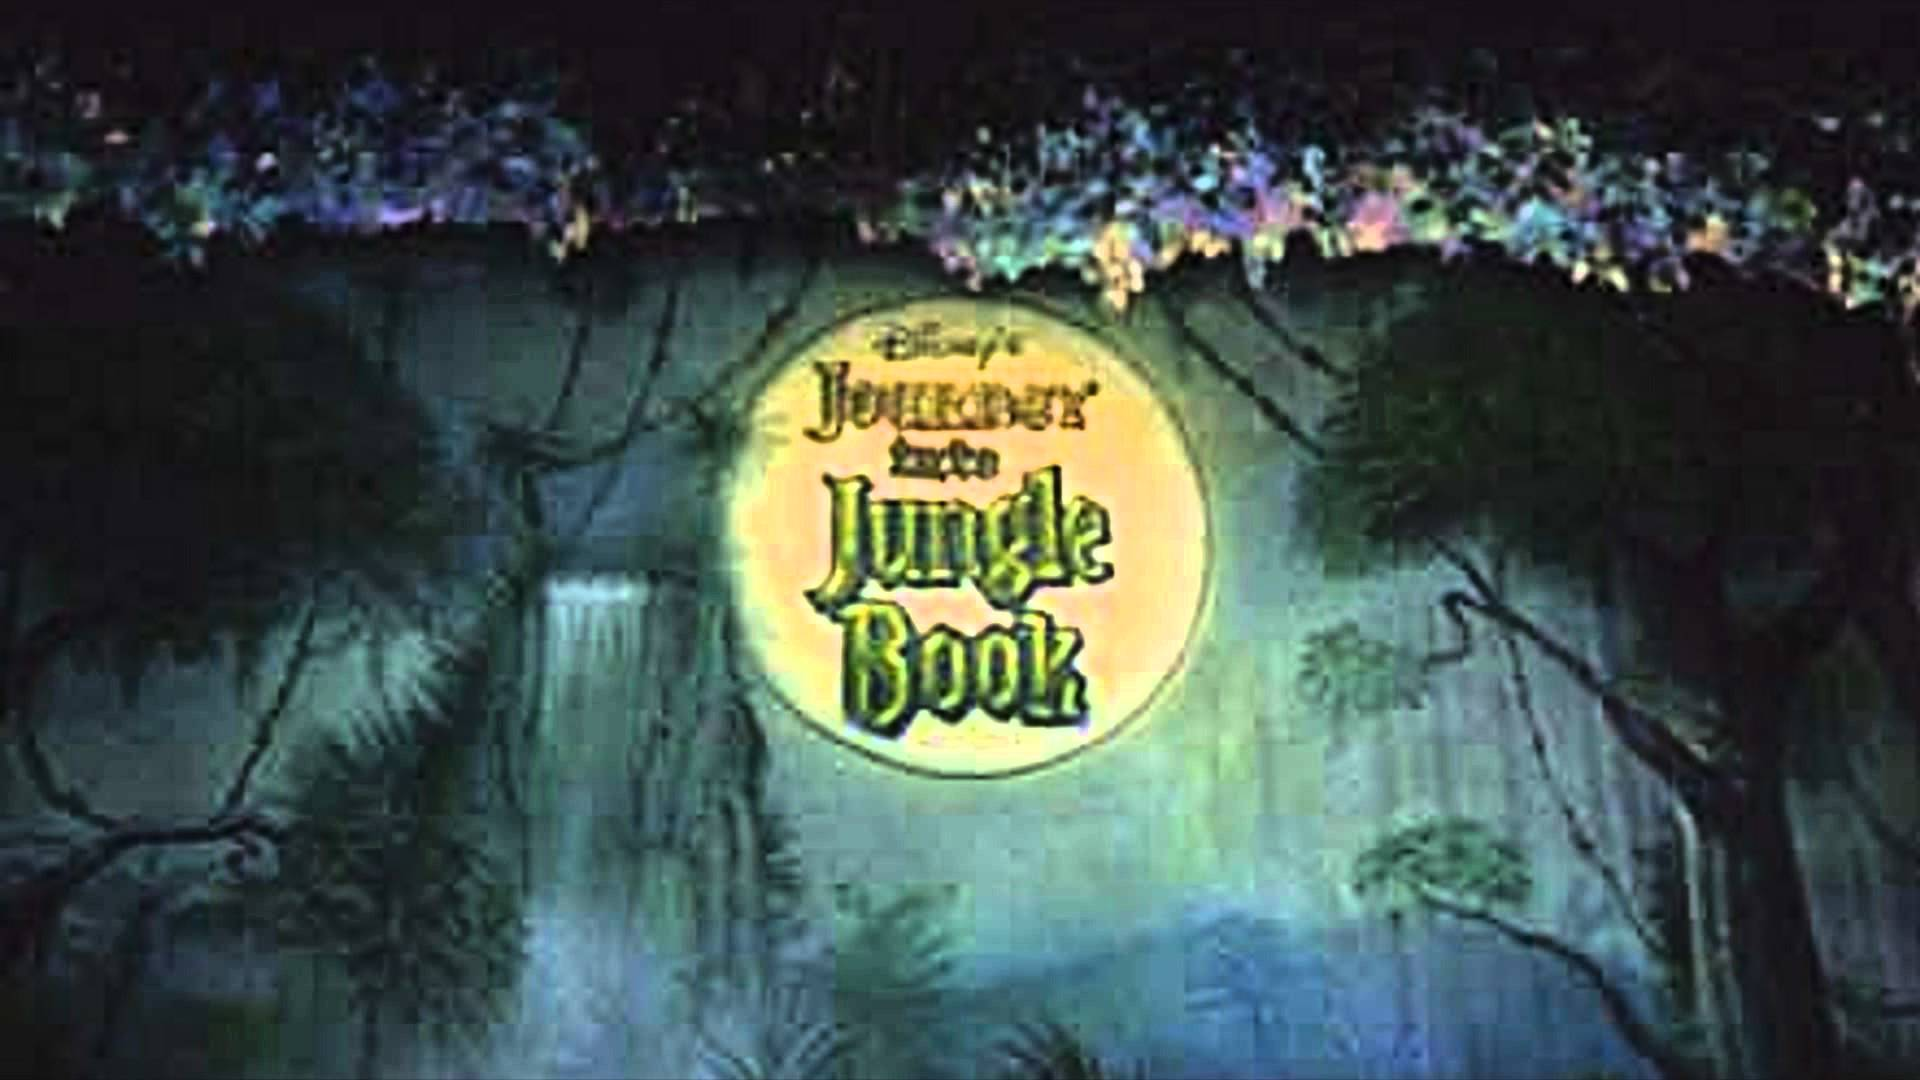 Journey into the Jungle Book